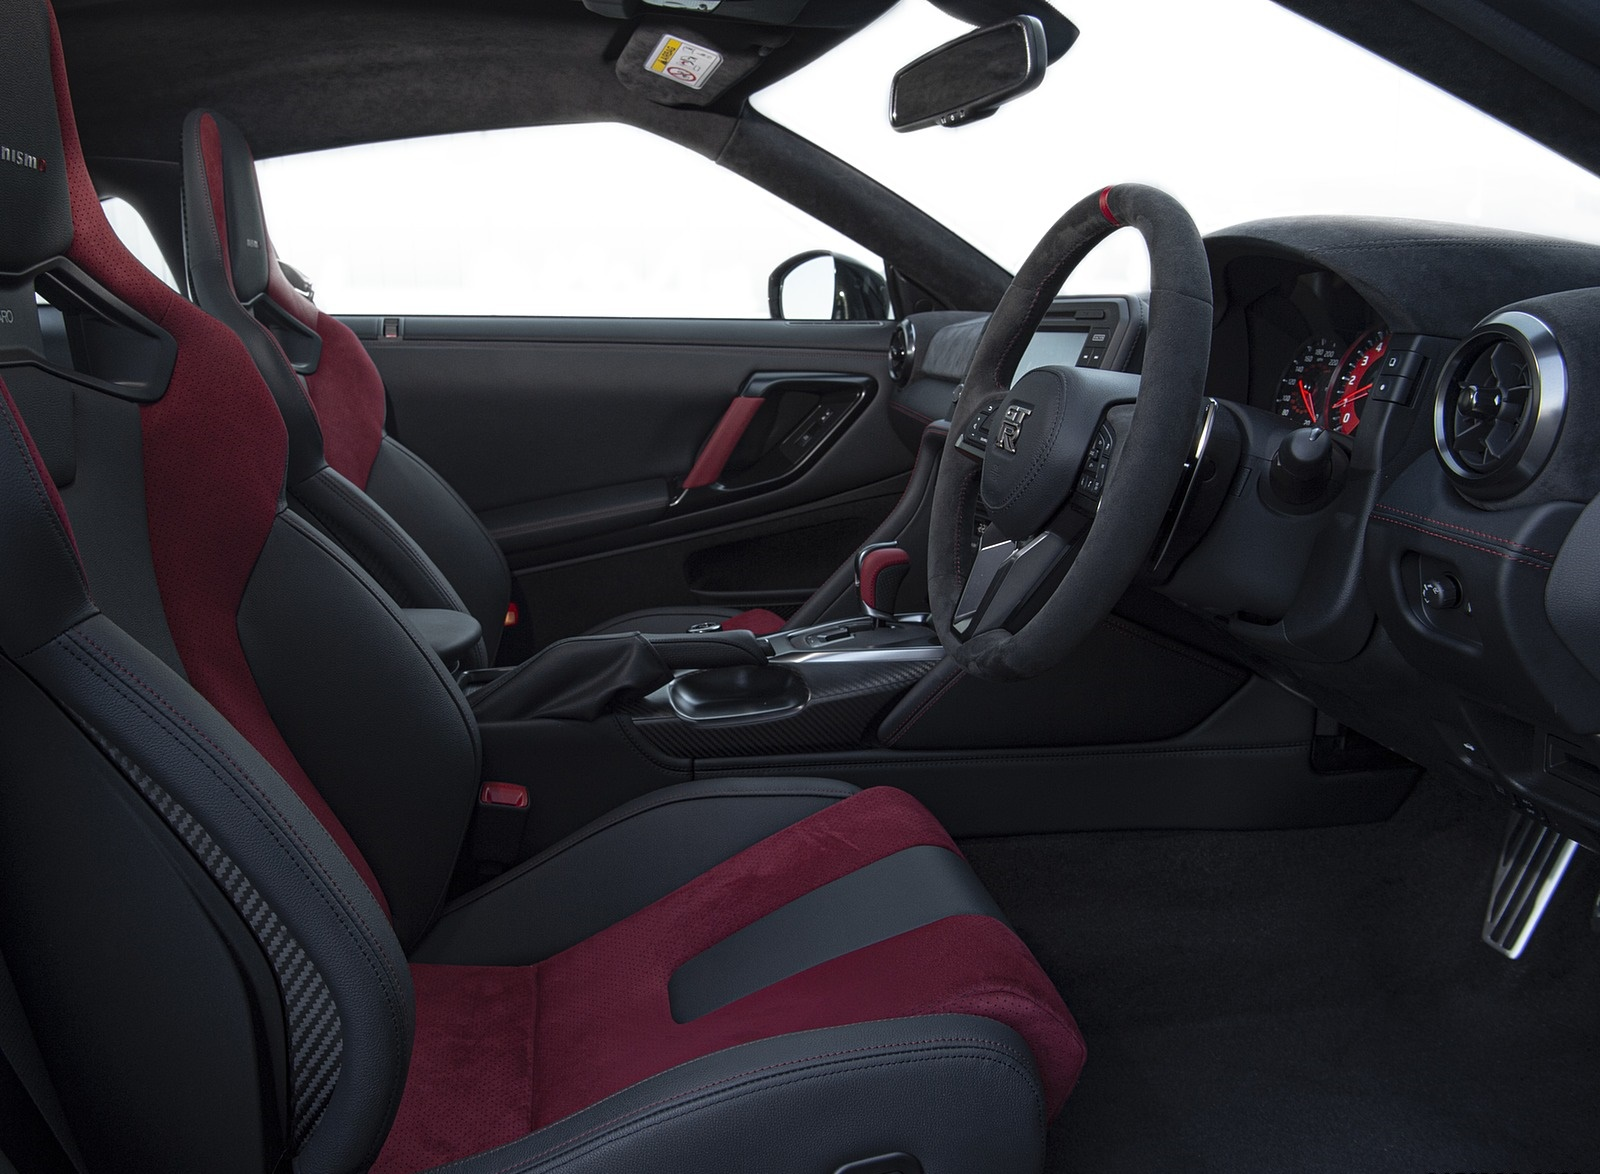 2020 Nissan Gt R Nismo Rhd Interior Seats Wallpapers 52